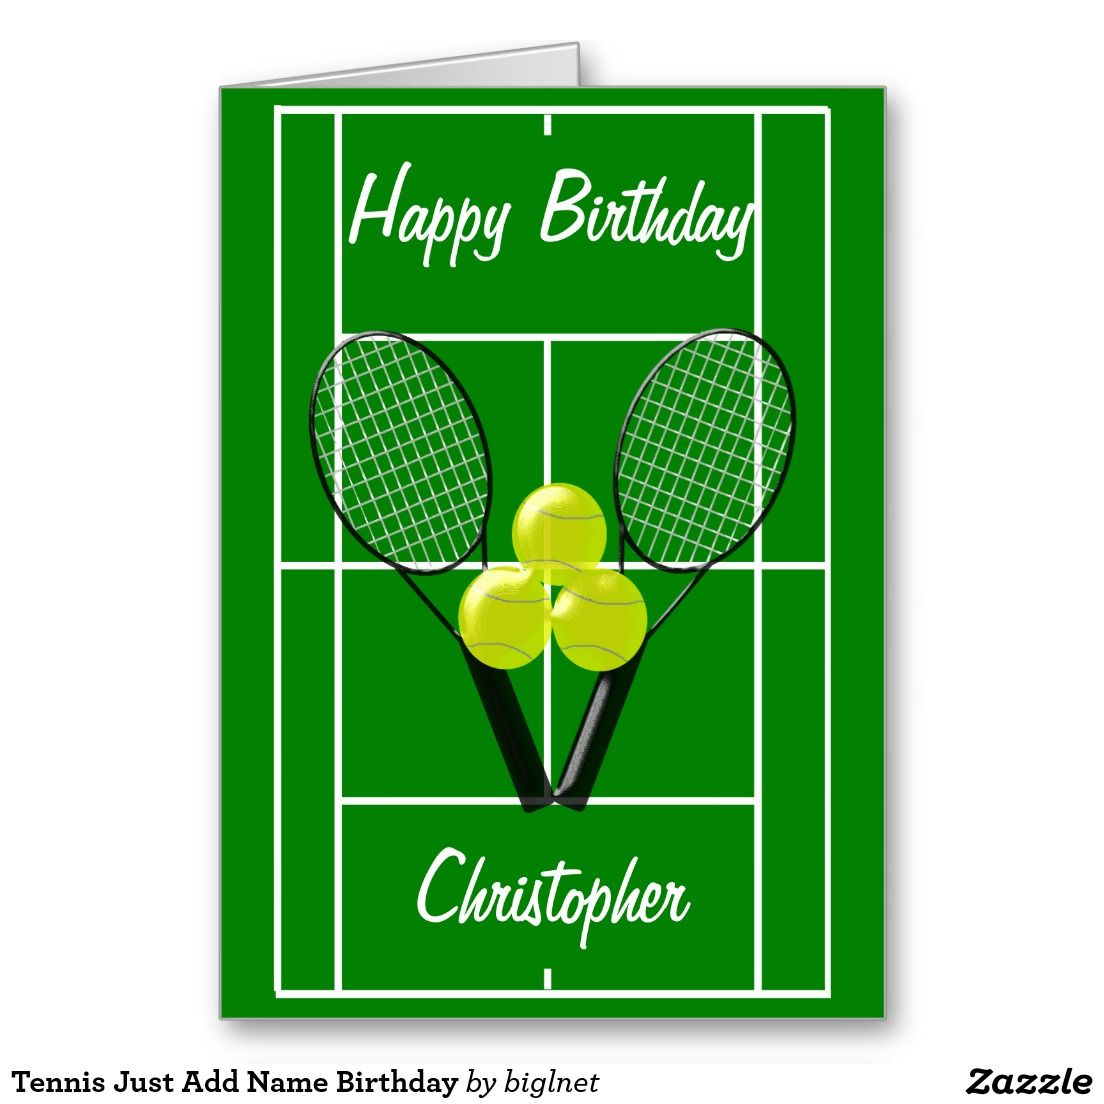 Tennis Just Add Name Birthday Card Zazzle Com In 2020 Birthday Cards For Boys Birthday Cards Birthday Greeting Cards